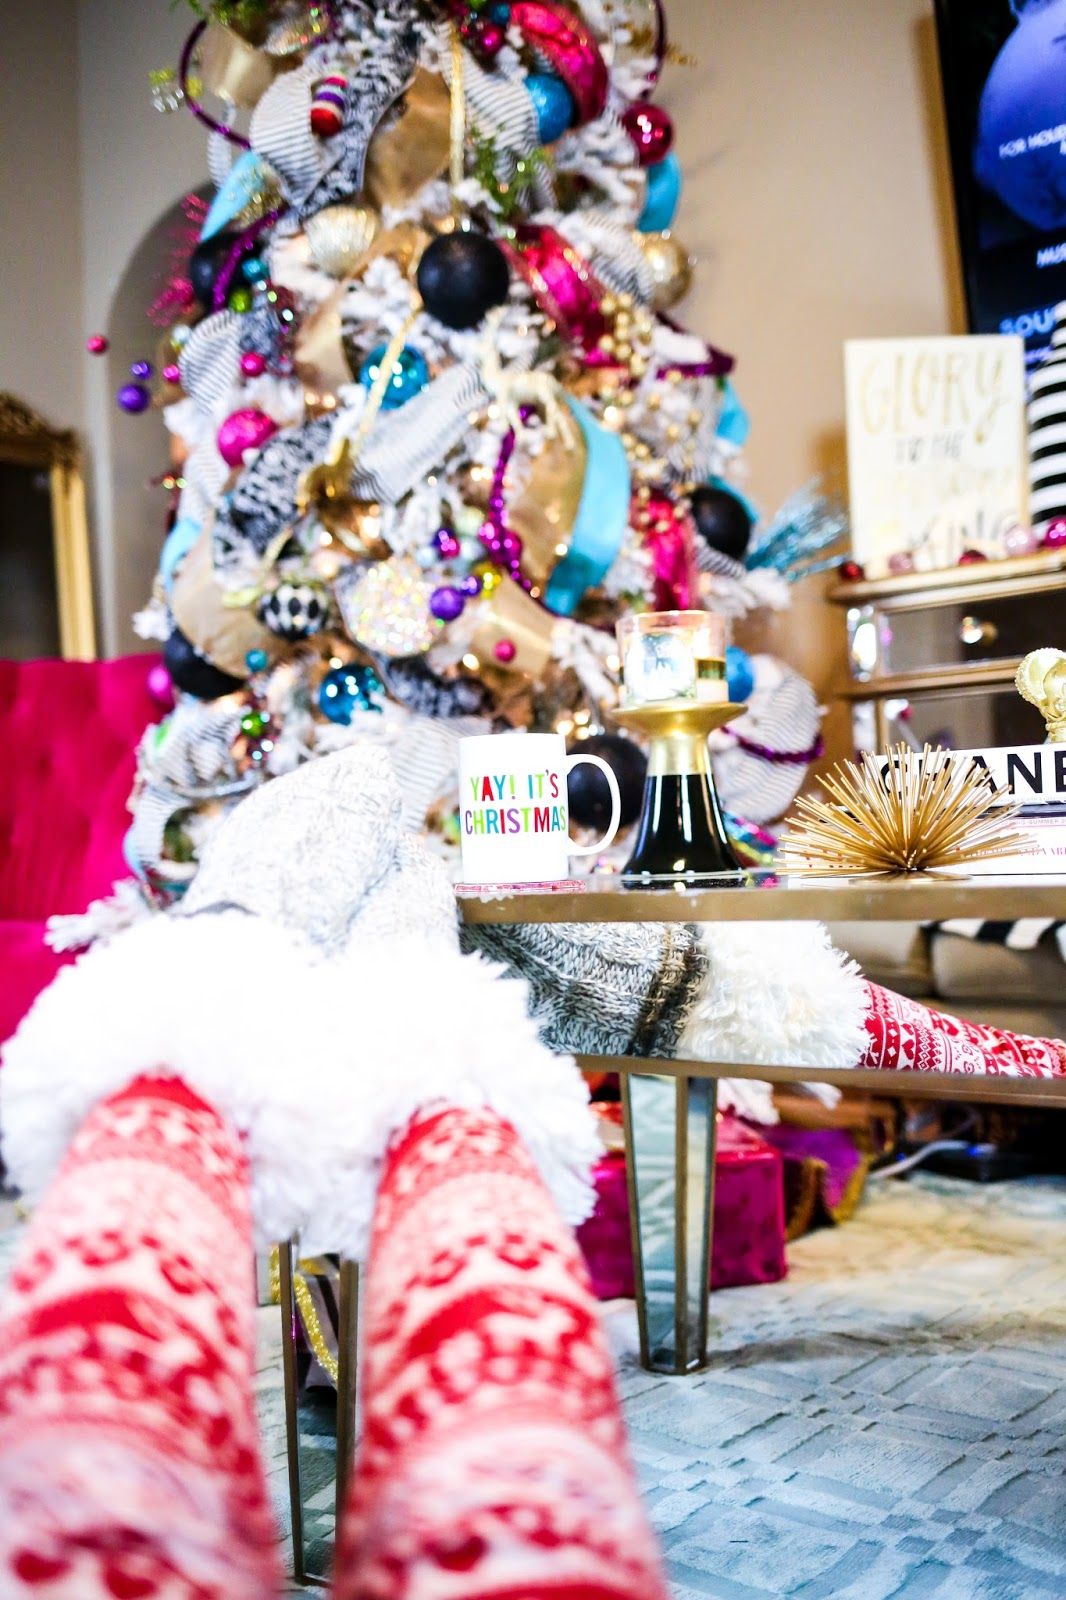 At home gift wrapping pj day the sweetest thing